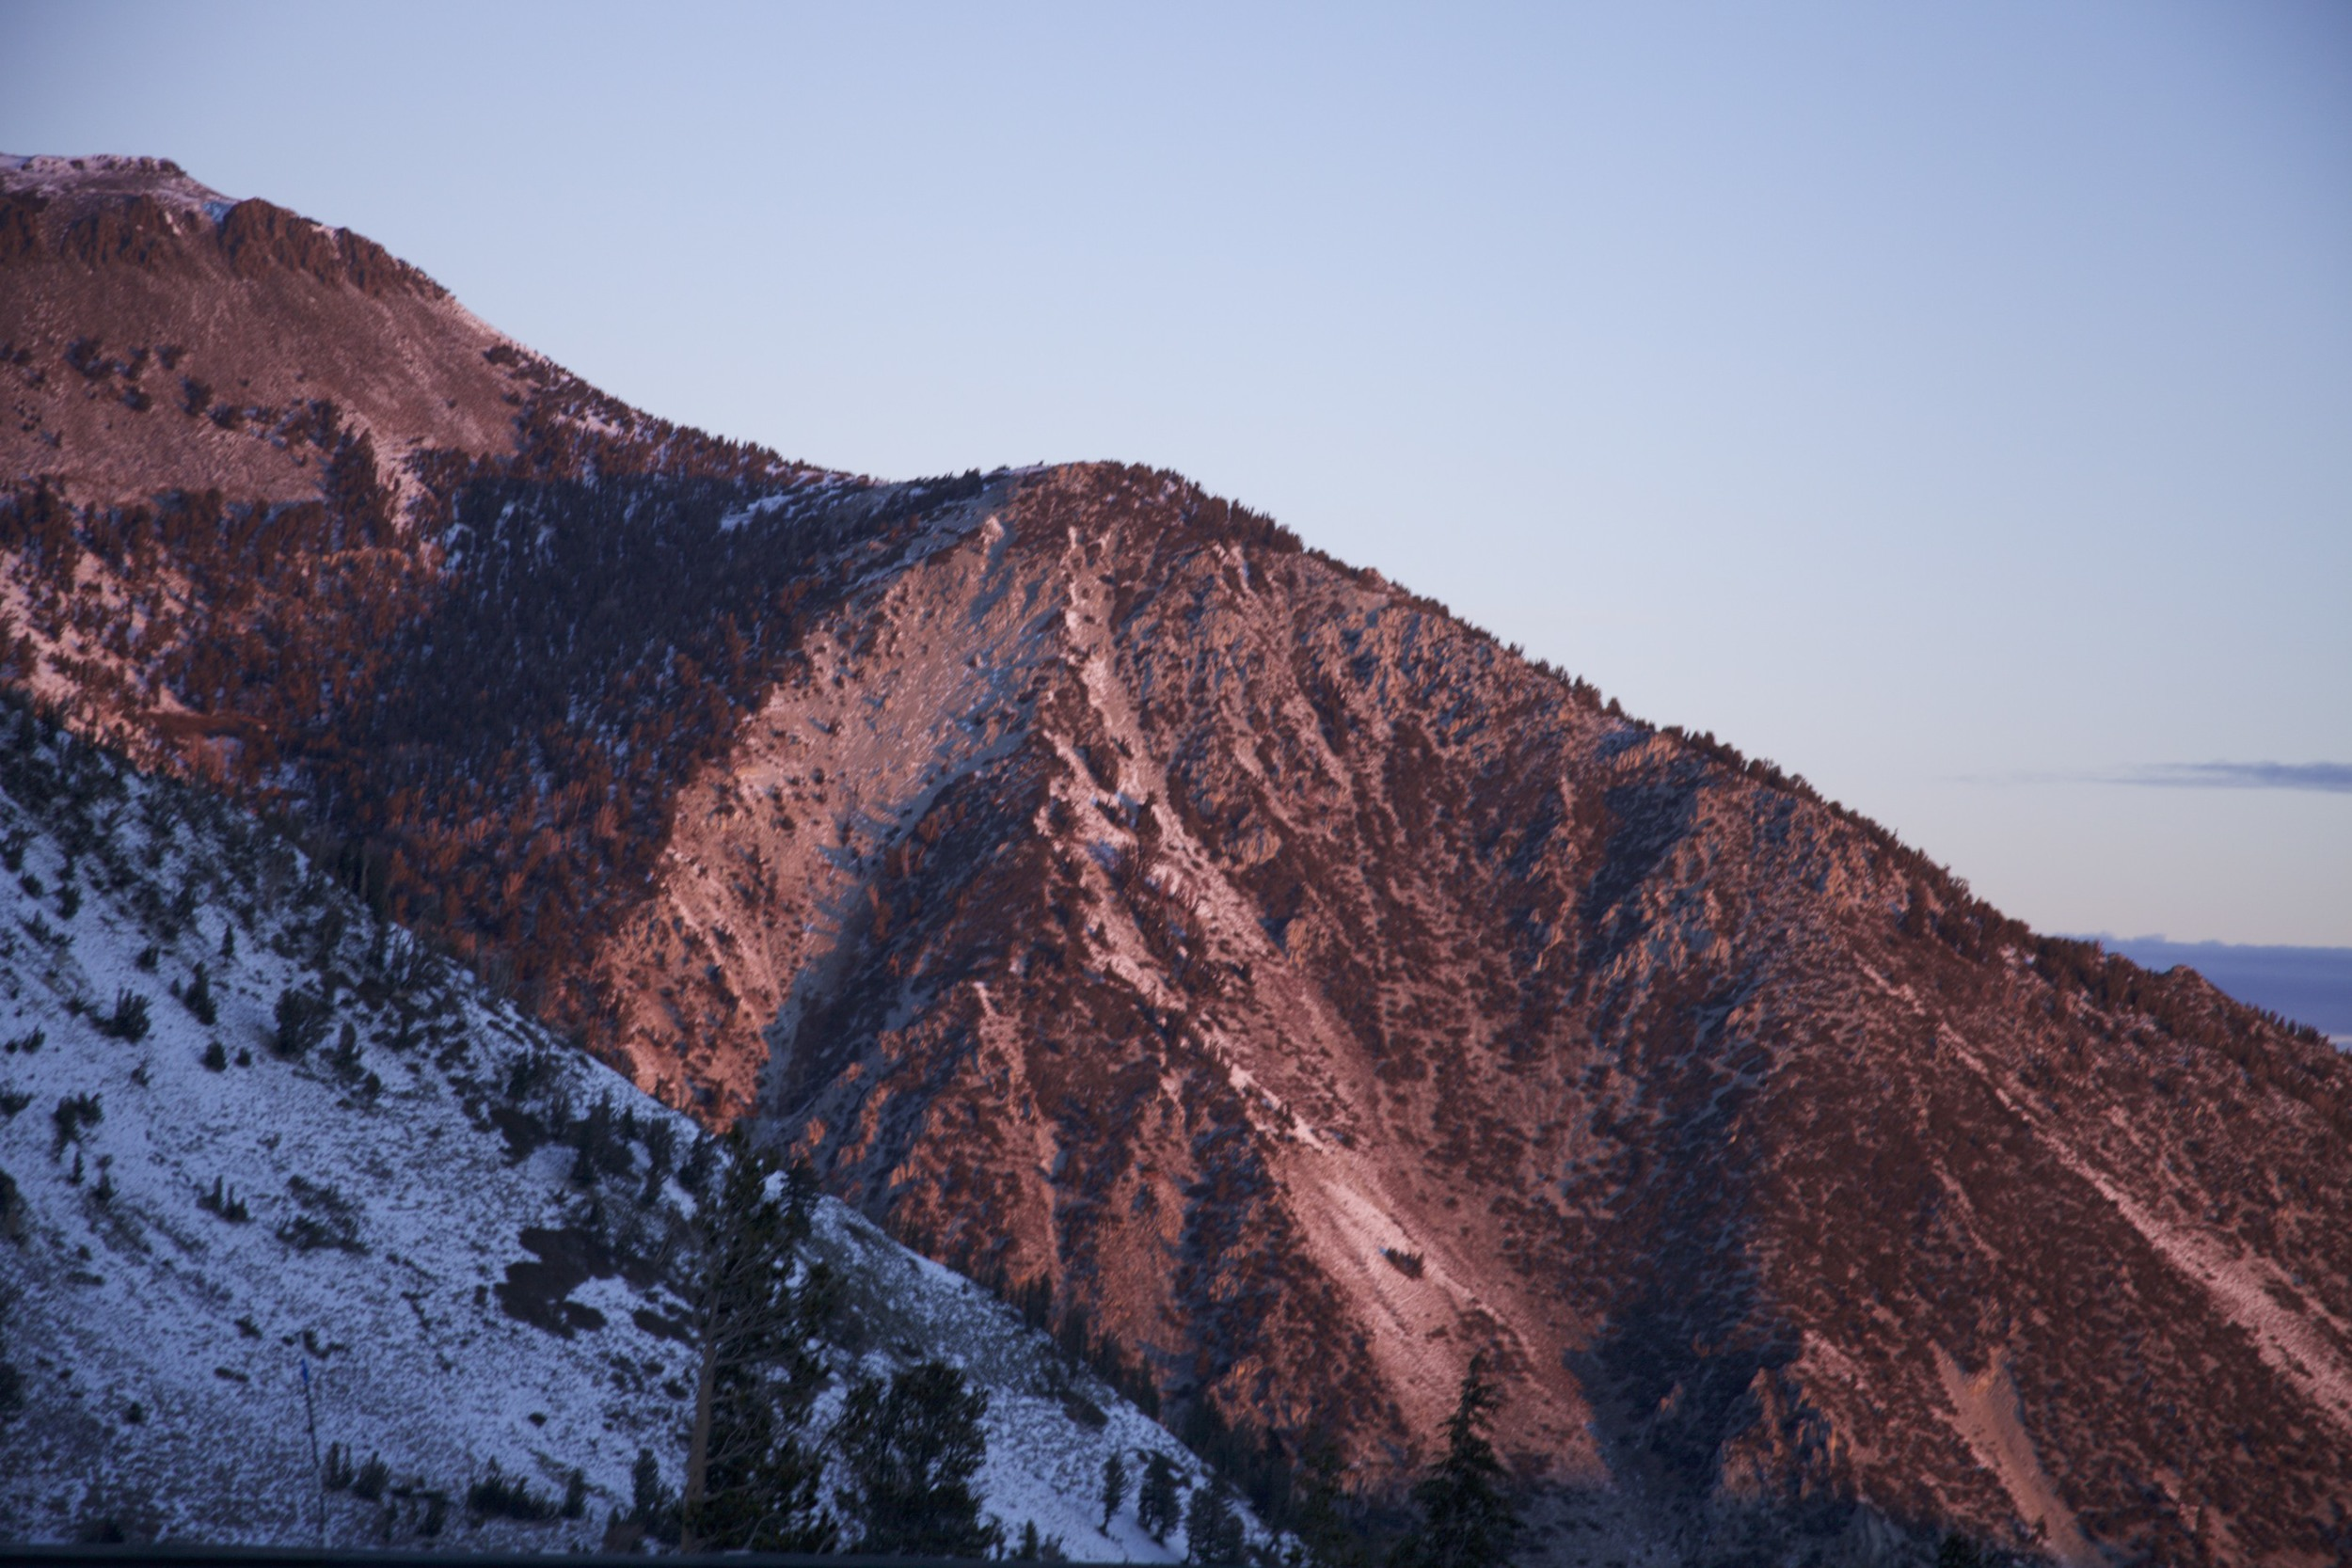 ZERO EDITING! This is how Mount Rose looked at sunrise. So crazy.